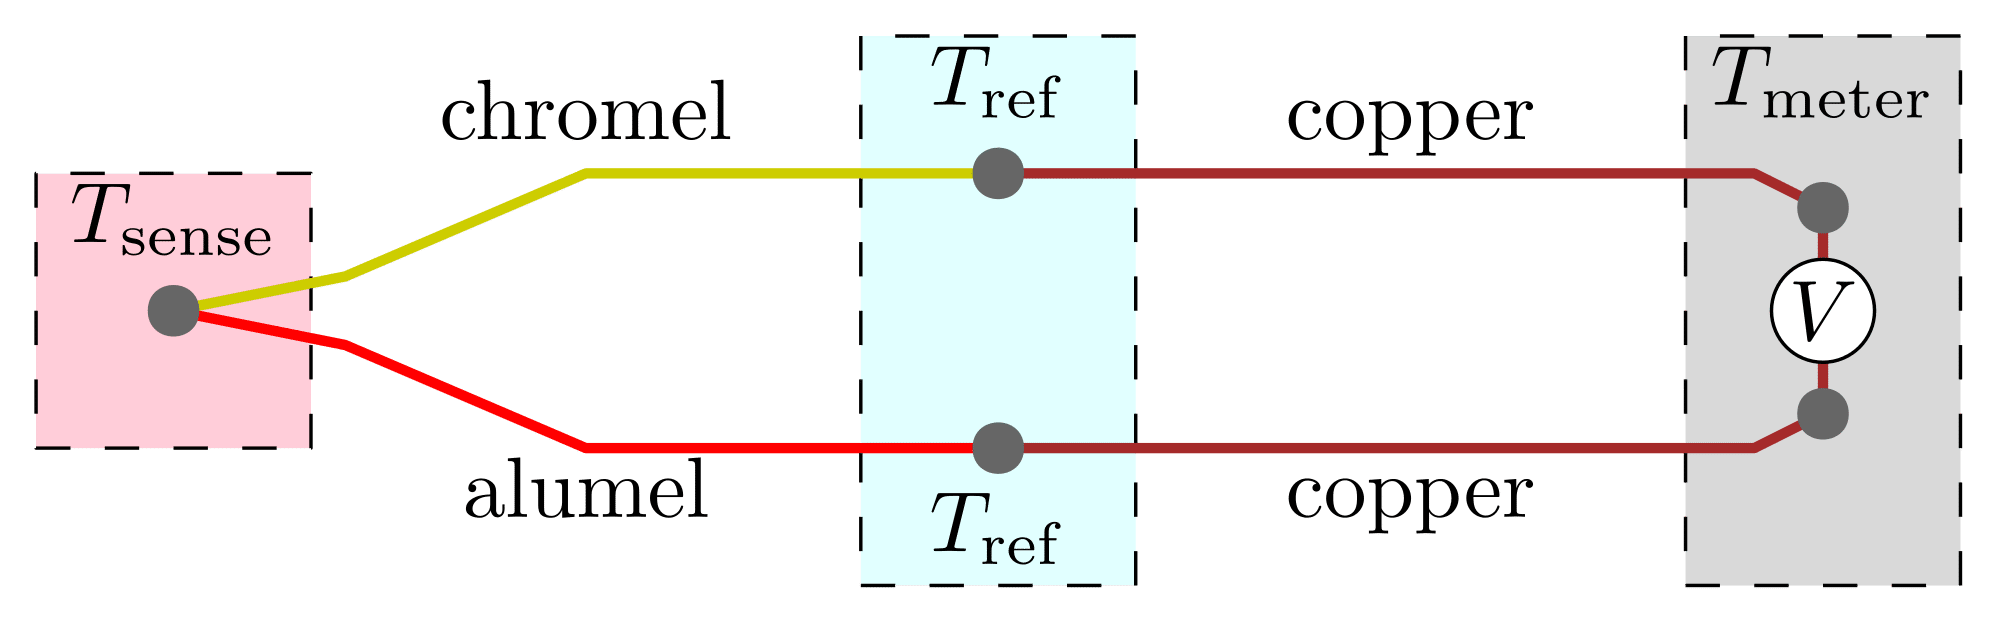 Thermocouple Physics How It Works Passive Components Blog